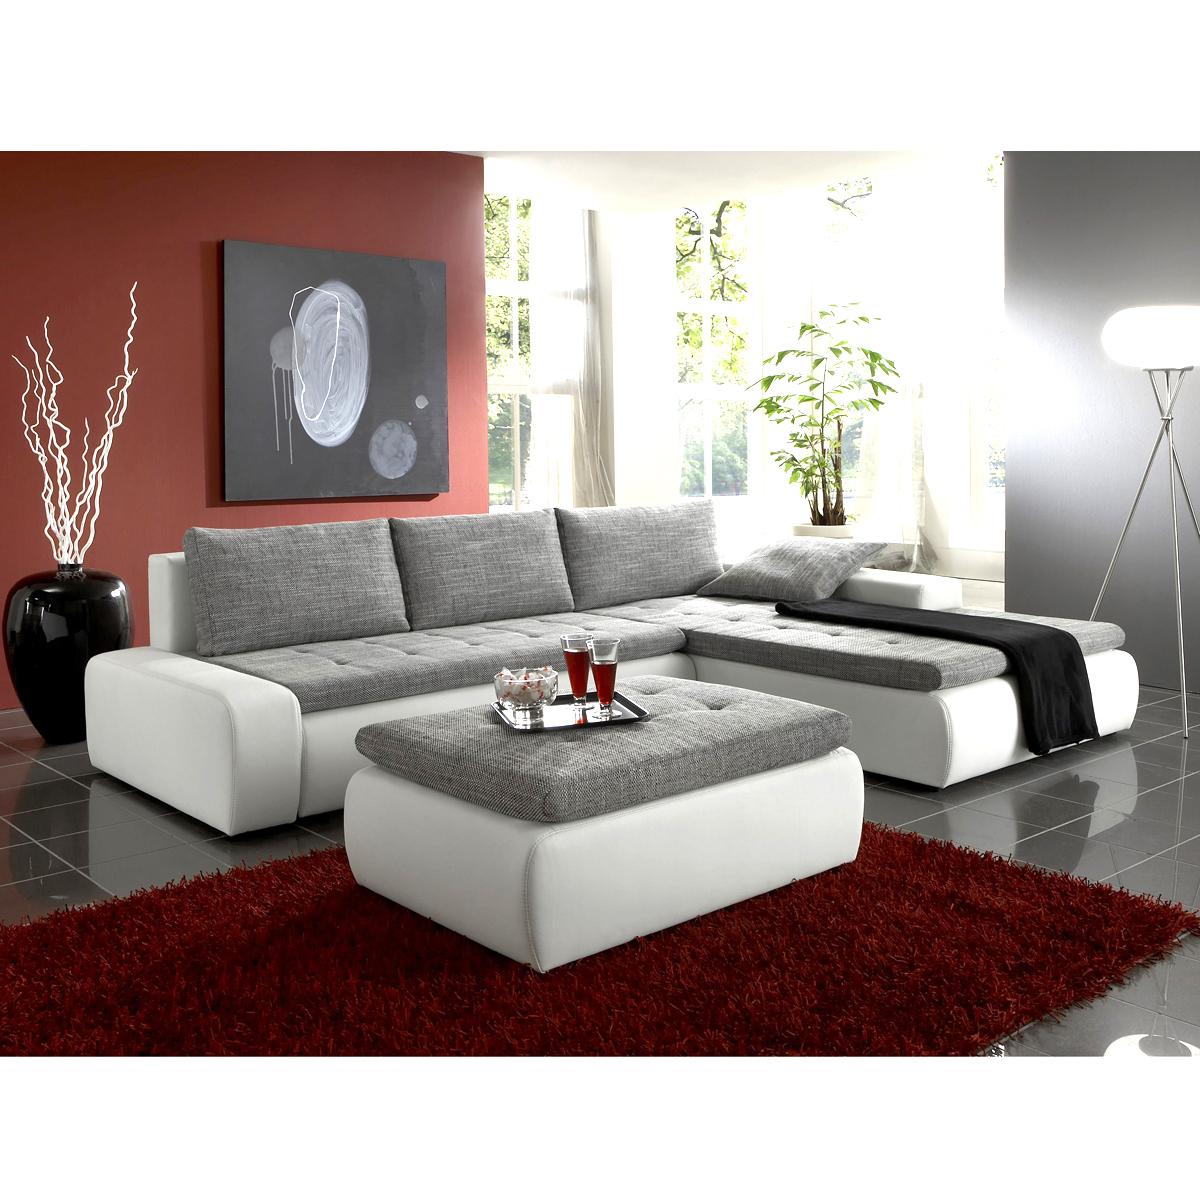 ecksofa alfa wohnlandschaft mit hocker in wei und grau. Black Bedroom Furniture Sets. Home Design Ideas